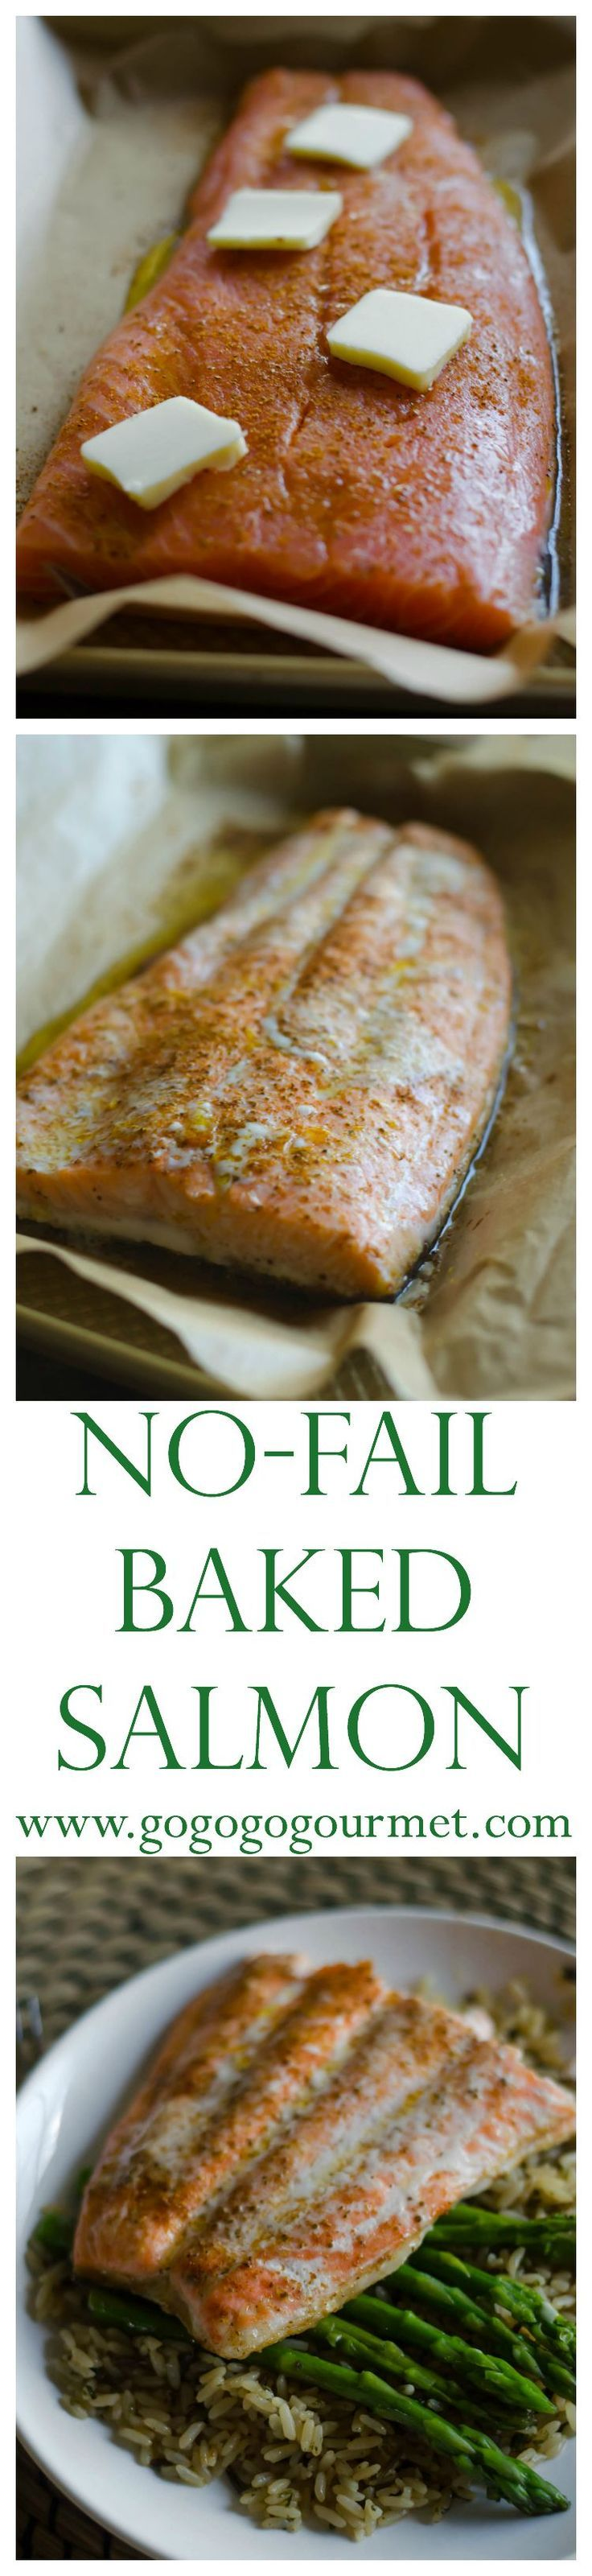 13 minutes to perfectly baked salmon. No Fail Baked Salmon | Go Go Go Gourmet @gogogogourmet